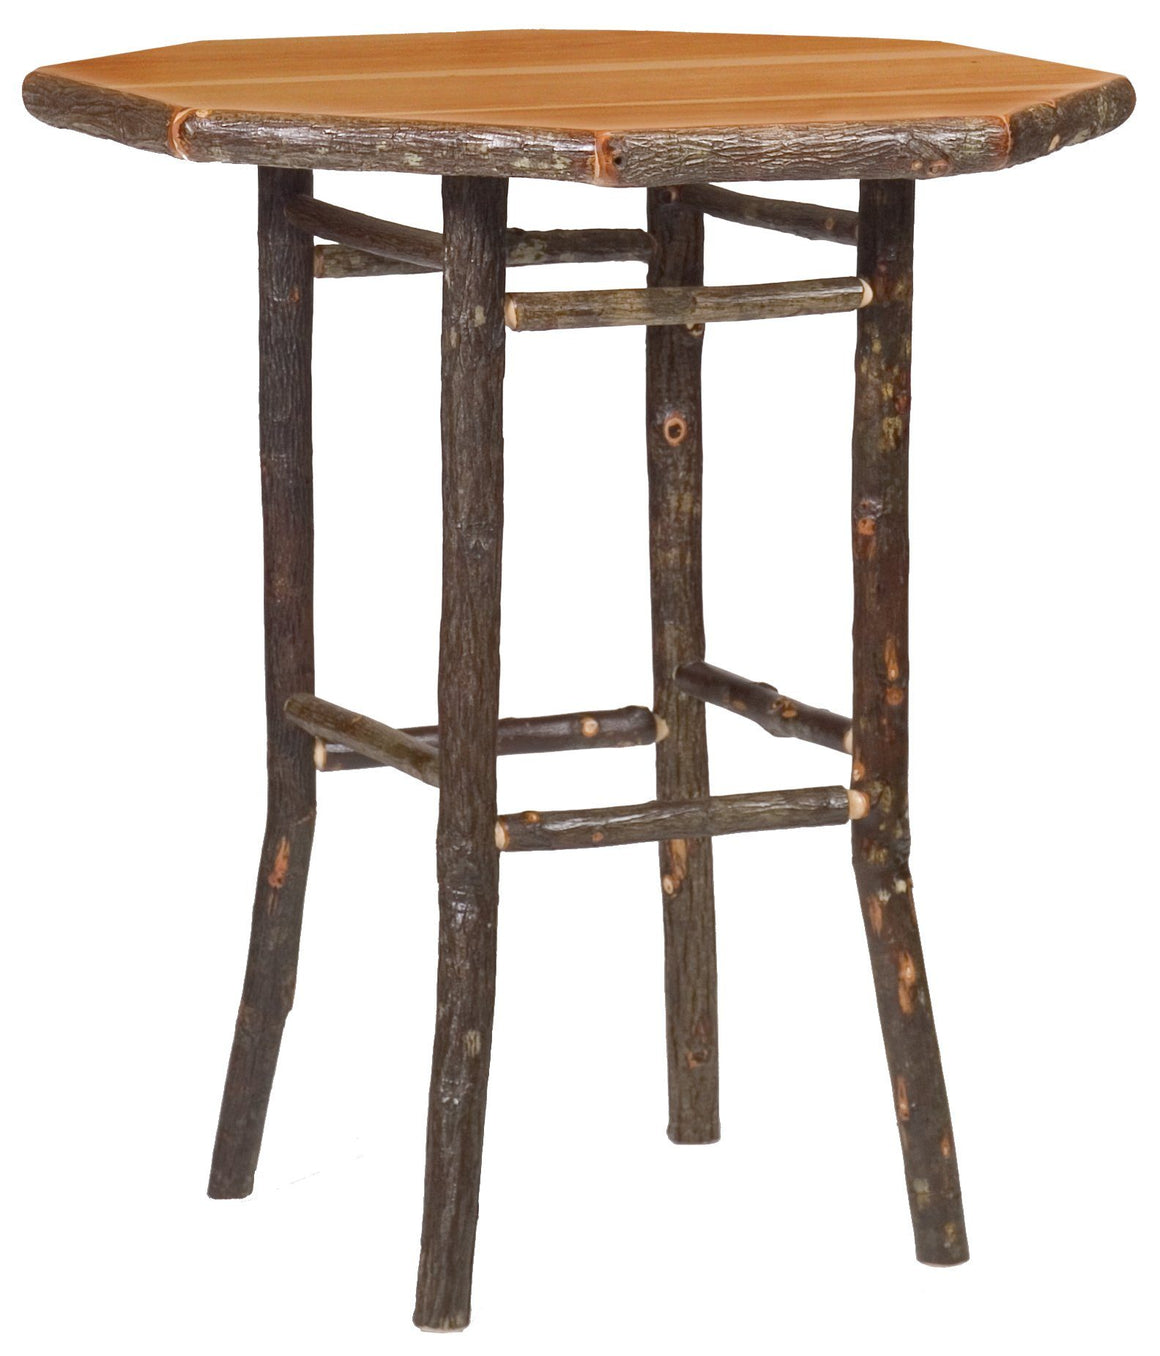 "Hickory Log Round Pub Table - 32"", 36"", 40"" - Armor Finish - Rustic Deco Incorporated"